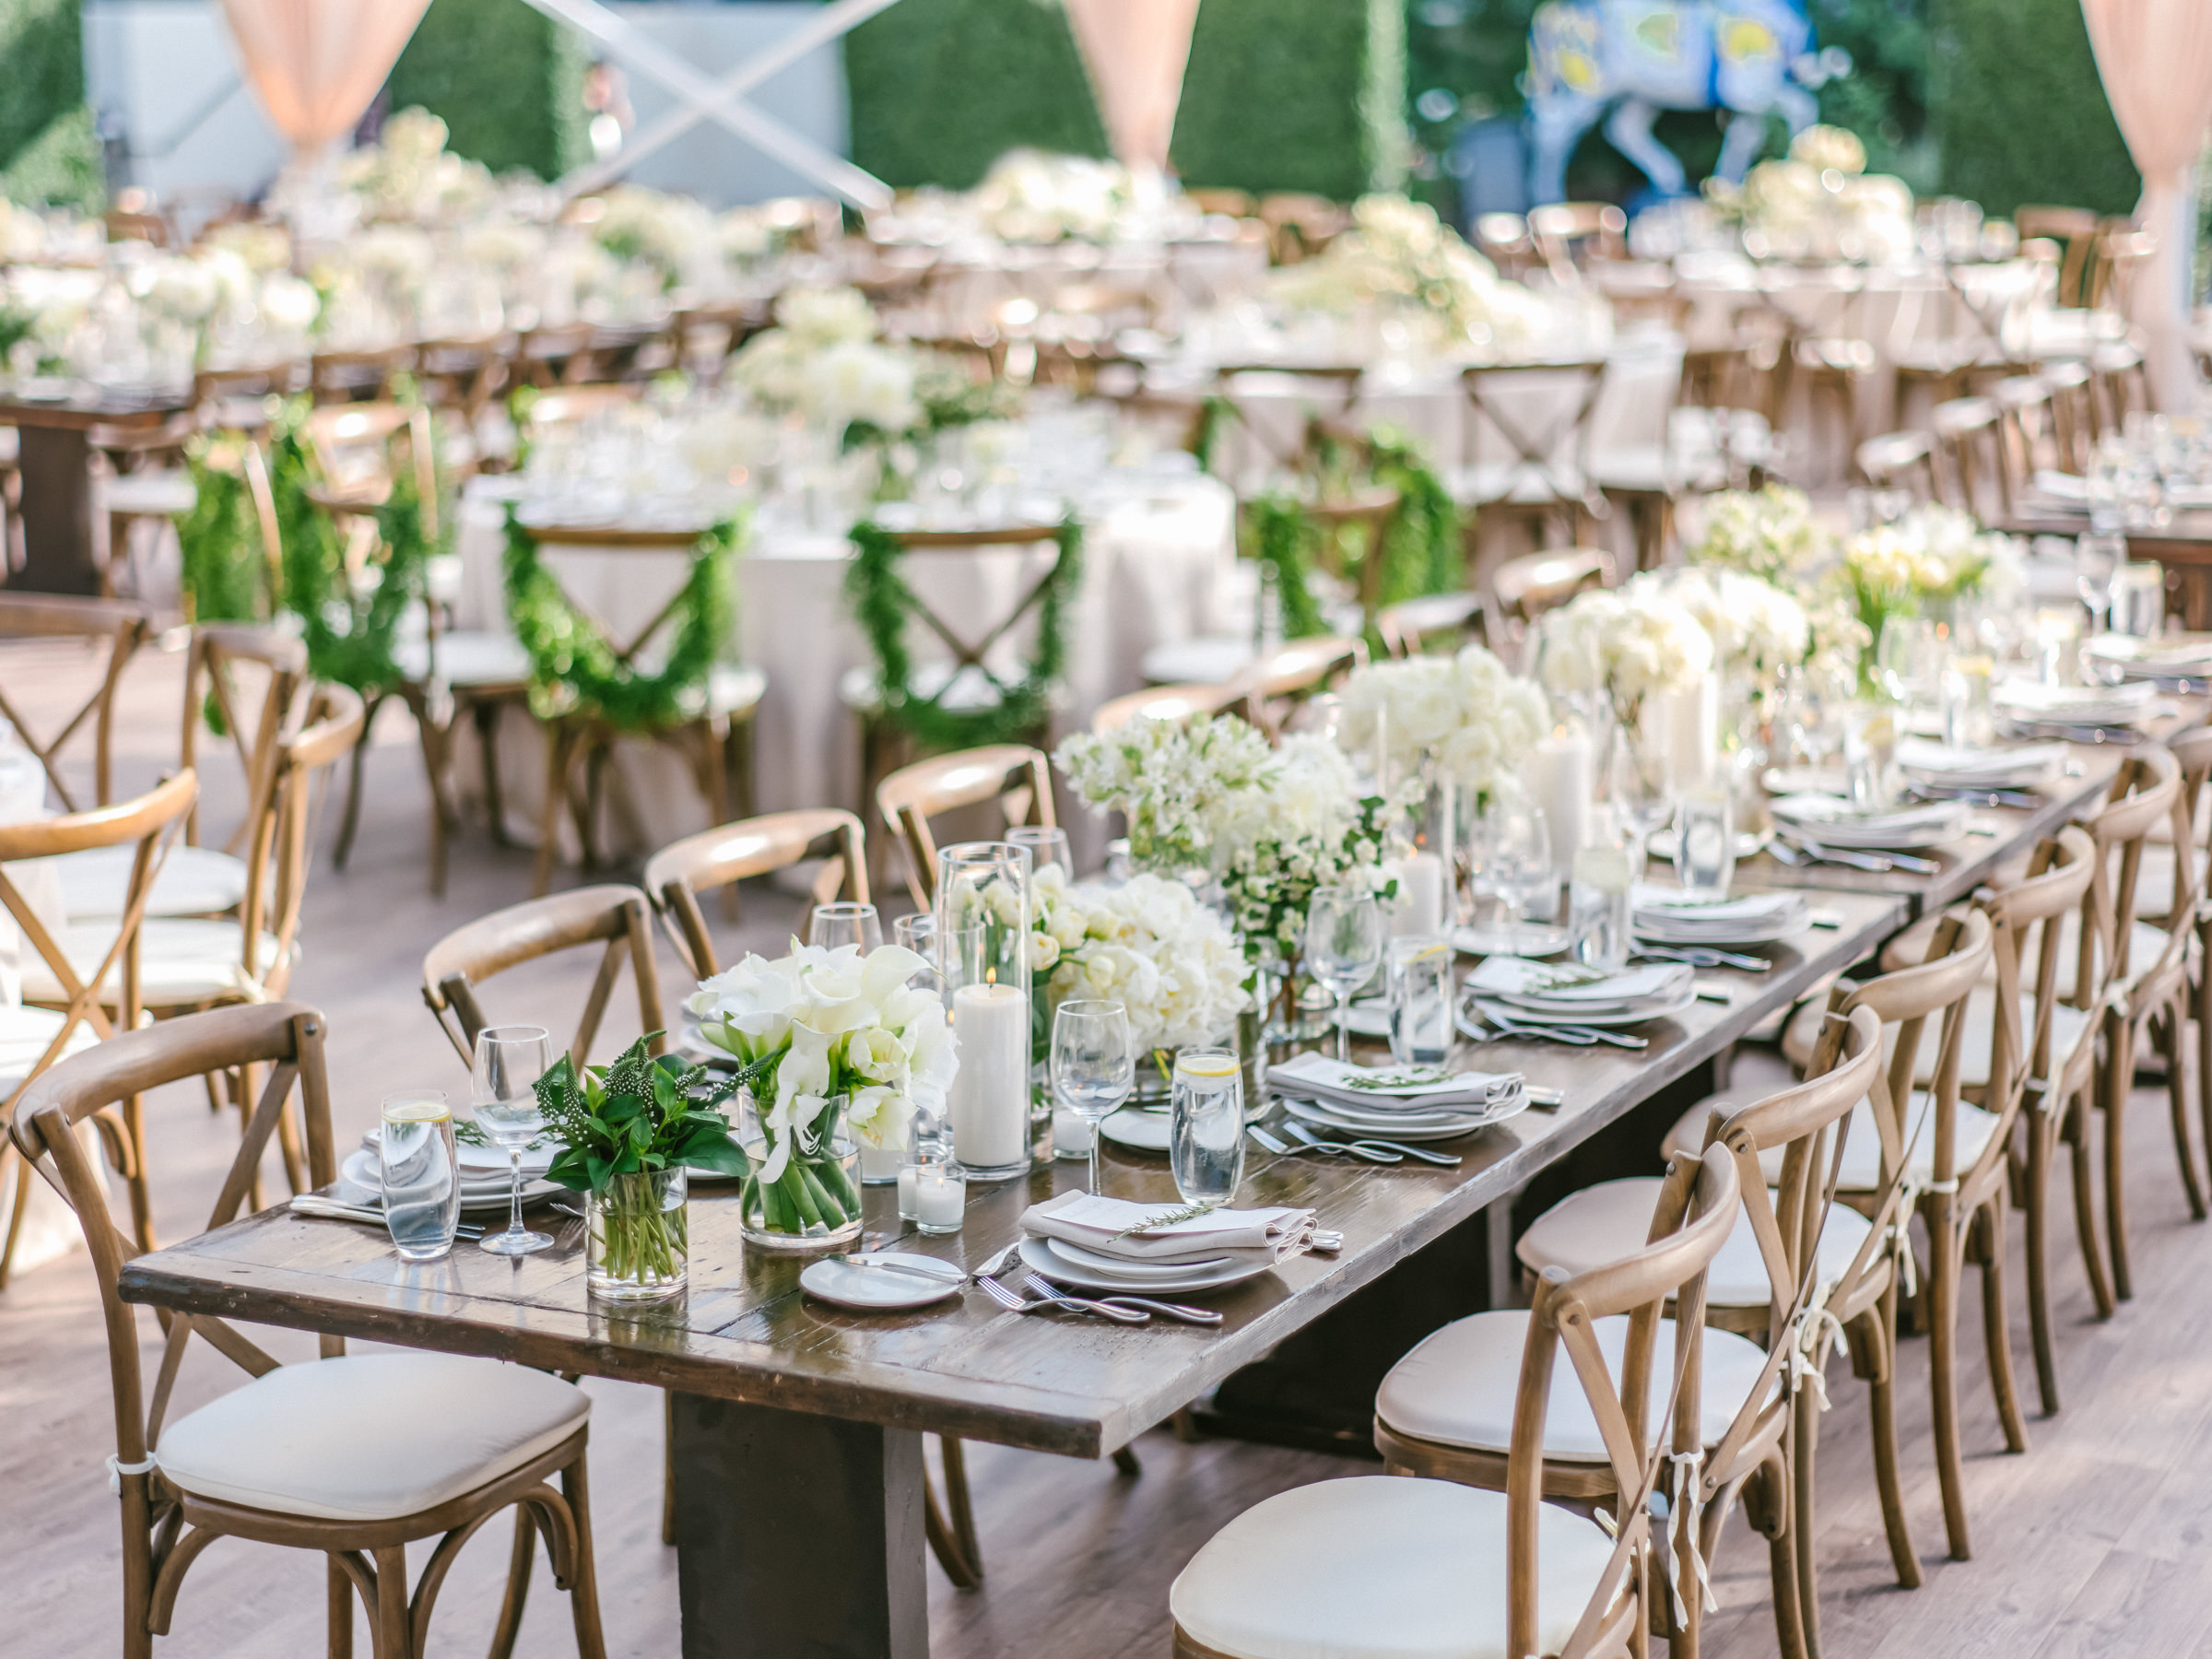 farmhouse table at wedding reception with floral centerpieces- photo by Amy and Stuart Photography, Los Angeles